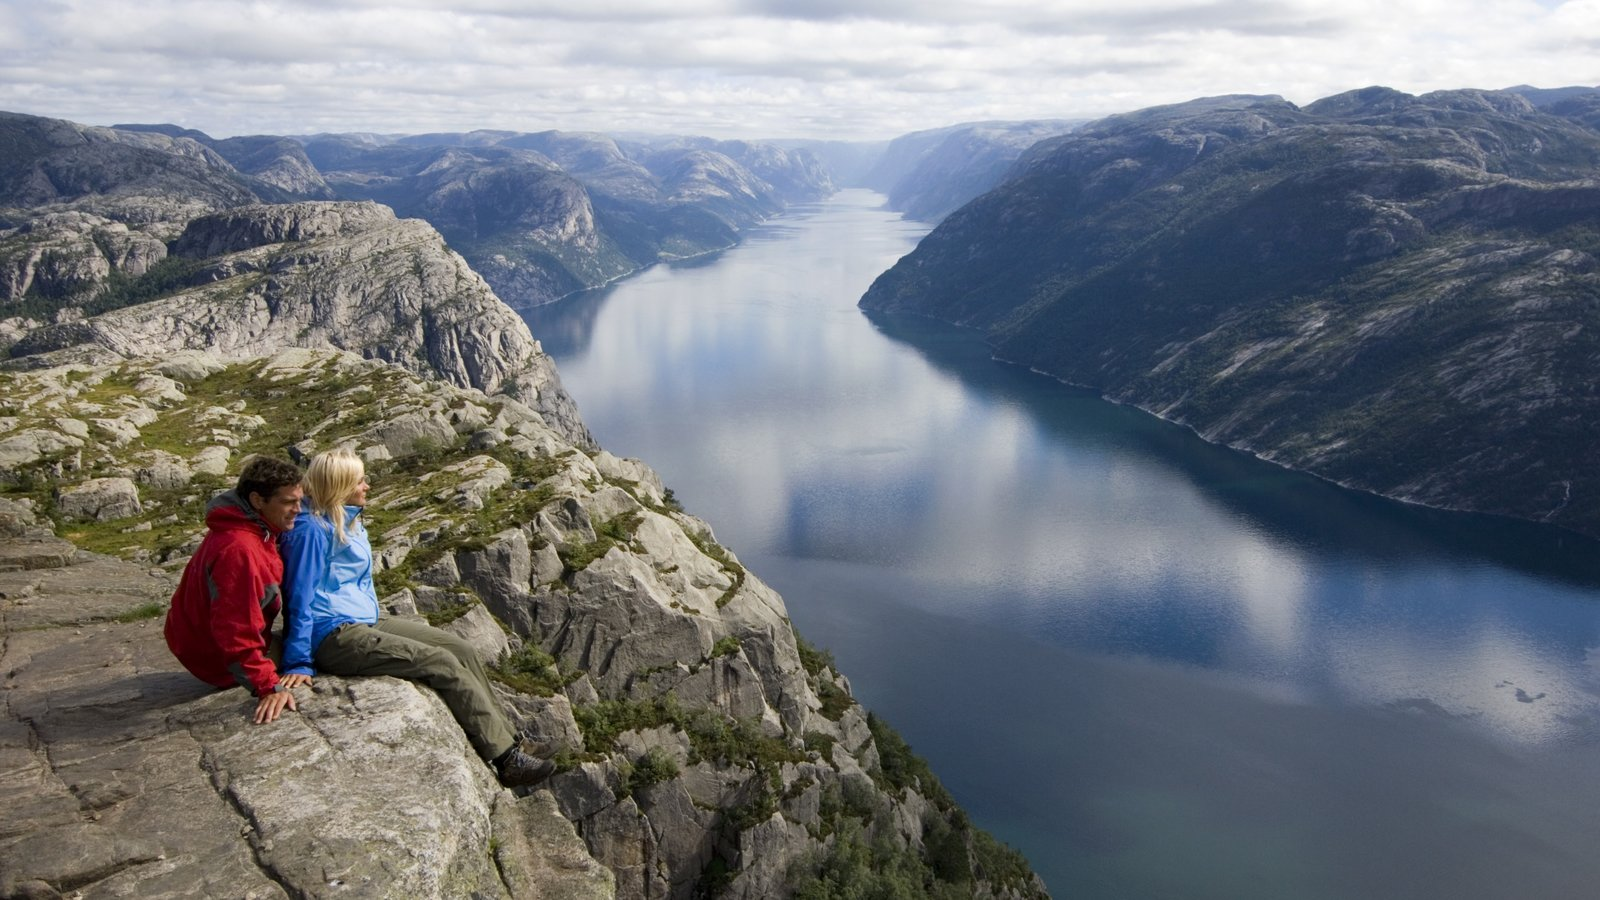 Preikestolen which includes mountains, views and hiking or walking